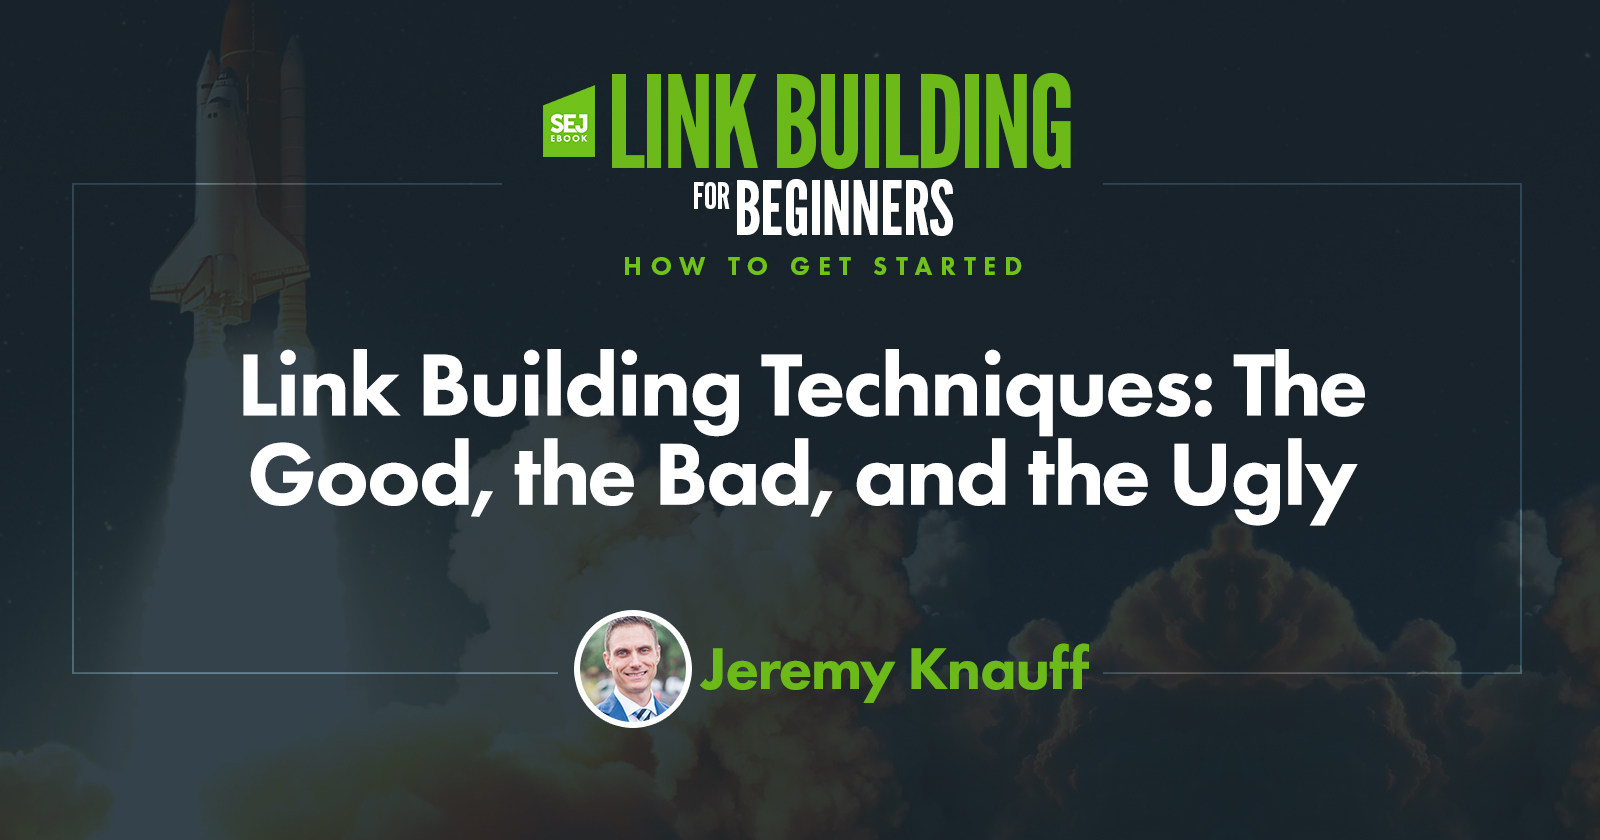 link building techniques the good the bad and the ugly 5e53c430f1798